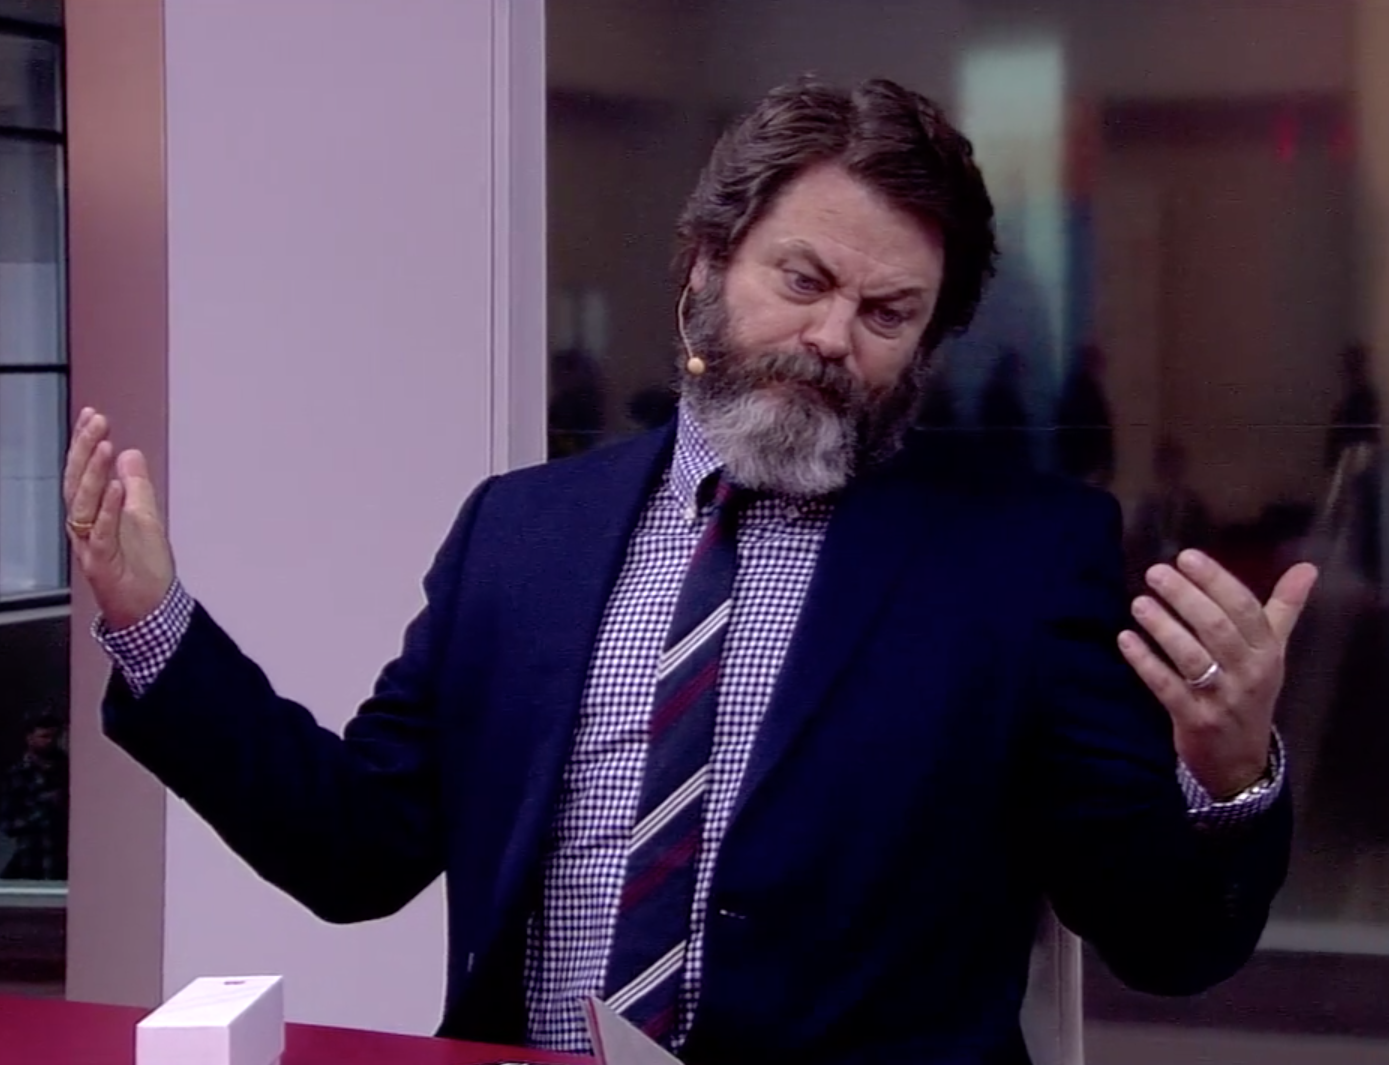 offerman-what-up.png